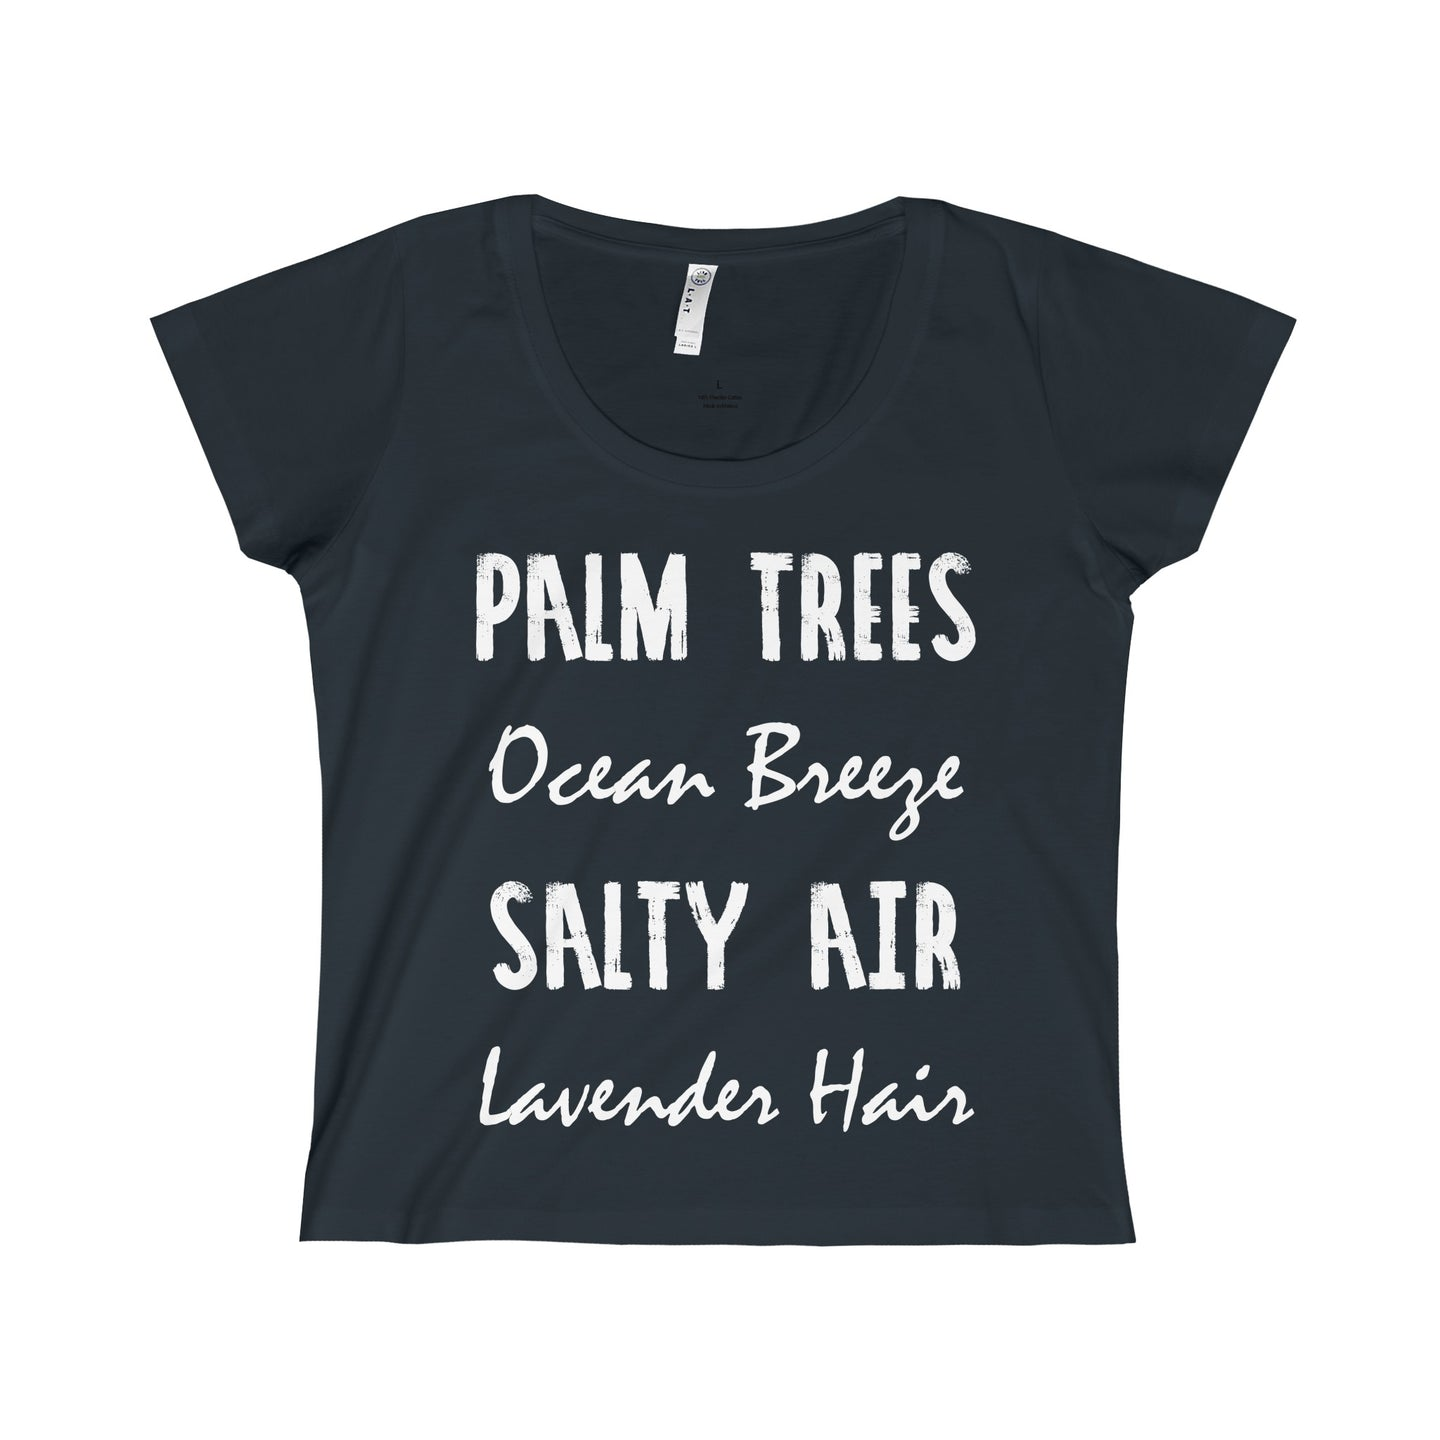 'Palm Trees Ocean Breeze Salty Air Lavender Hair' Ladies Fine Jersey Scoop Neck T-Shirt